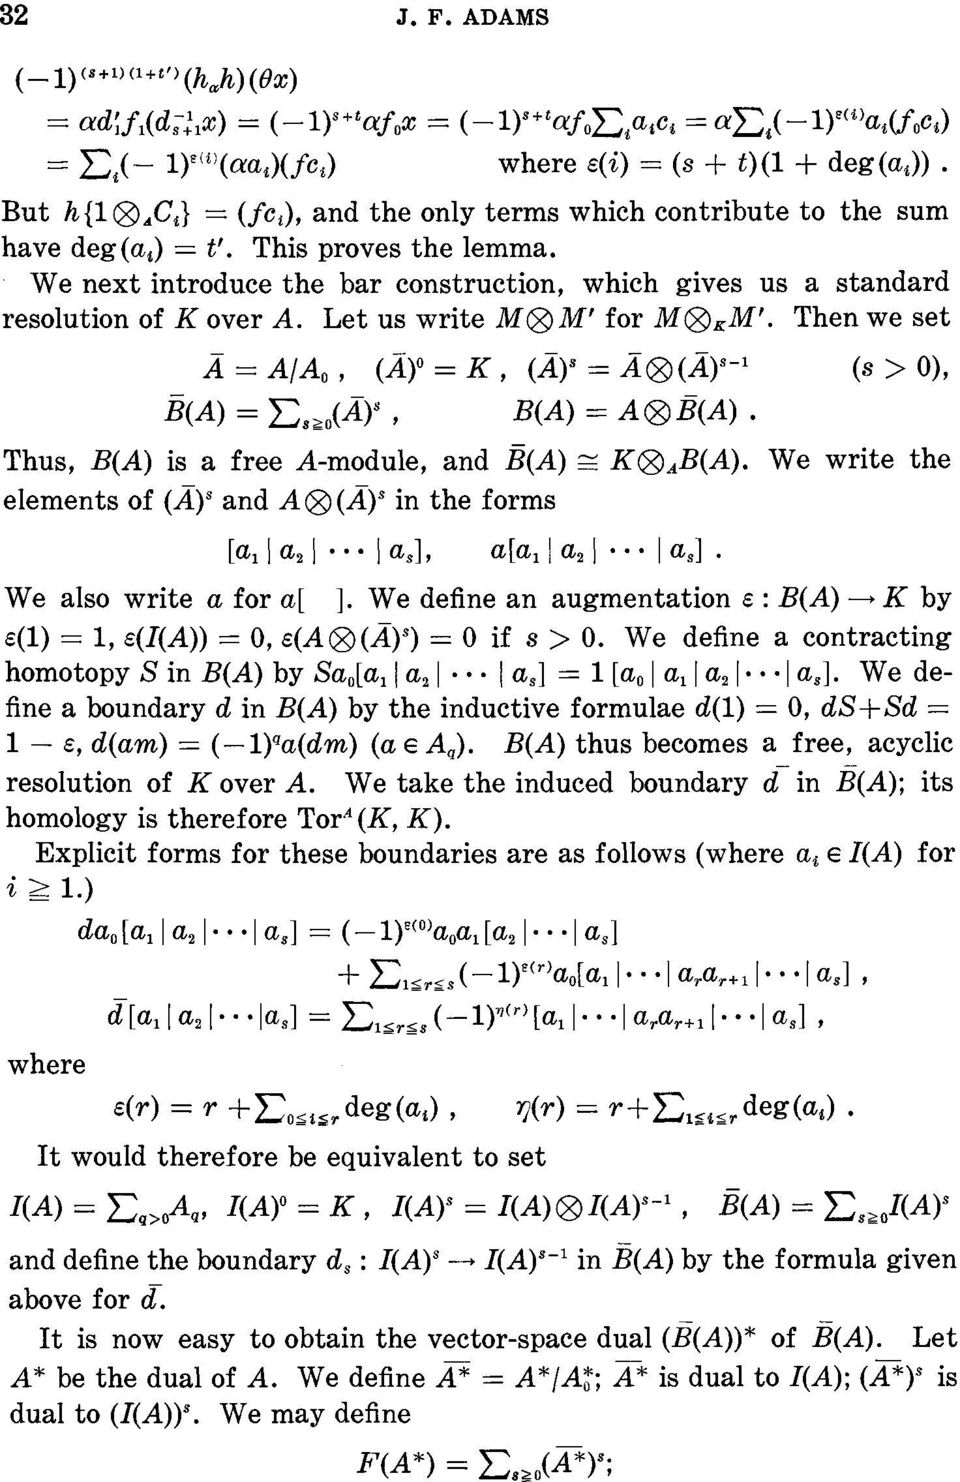 contribute to the sum have deg(as) - t'. This proves the lemma. We next introduce the bar construction, which gives us a standard resolution of K over A. Let us write MOD M' for M(&KM'.